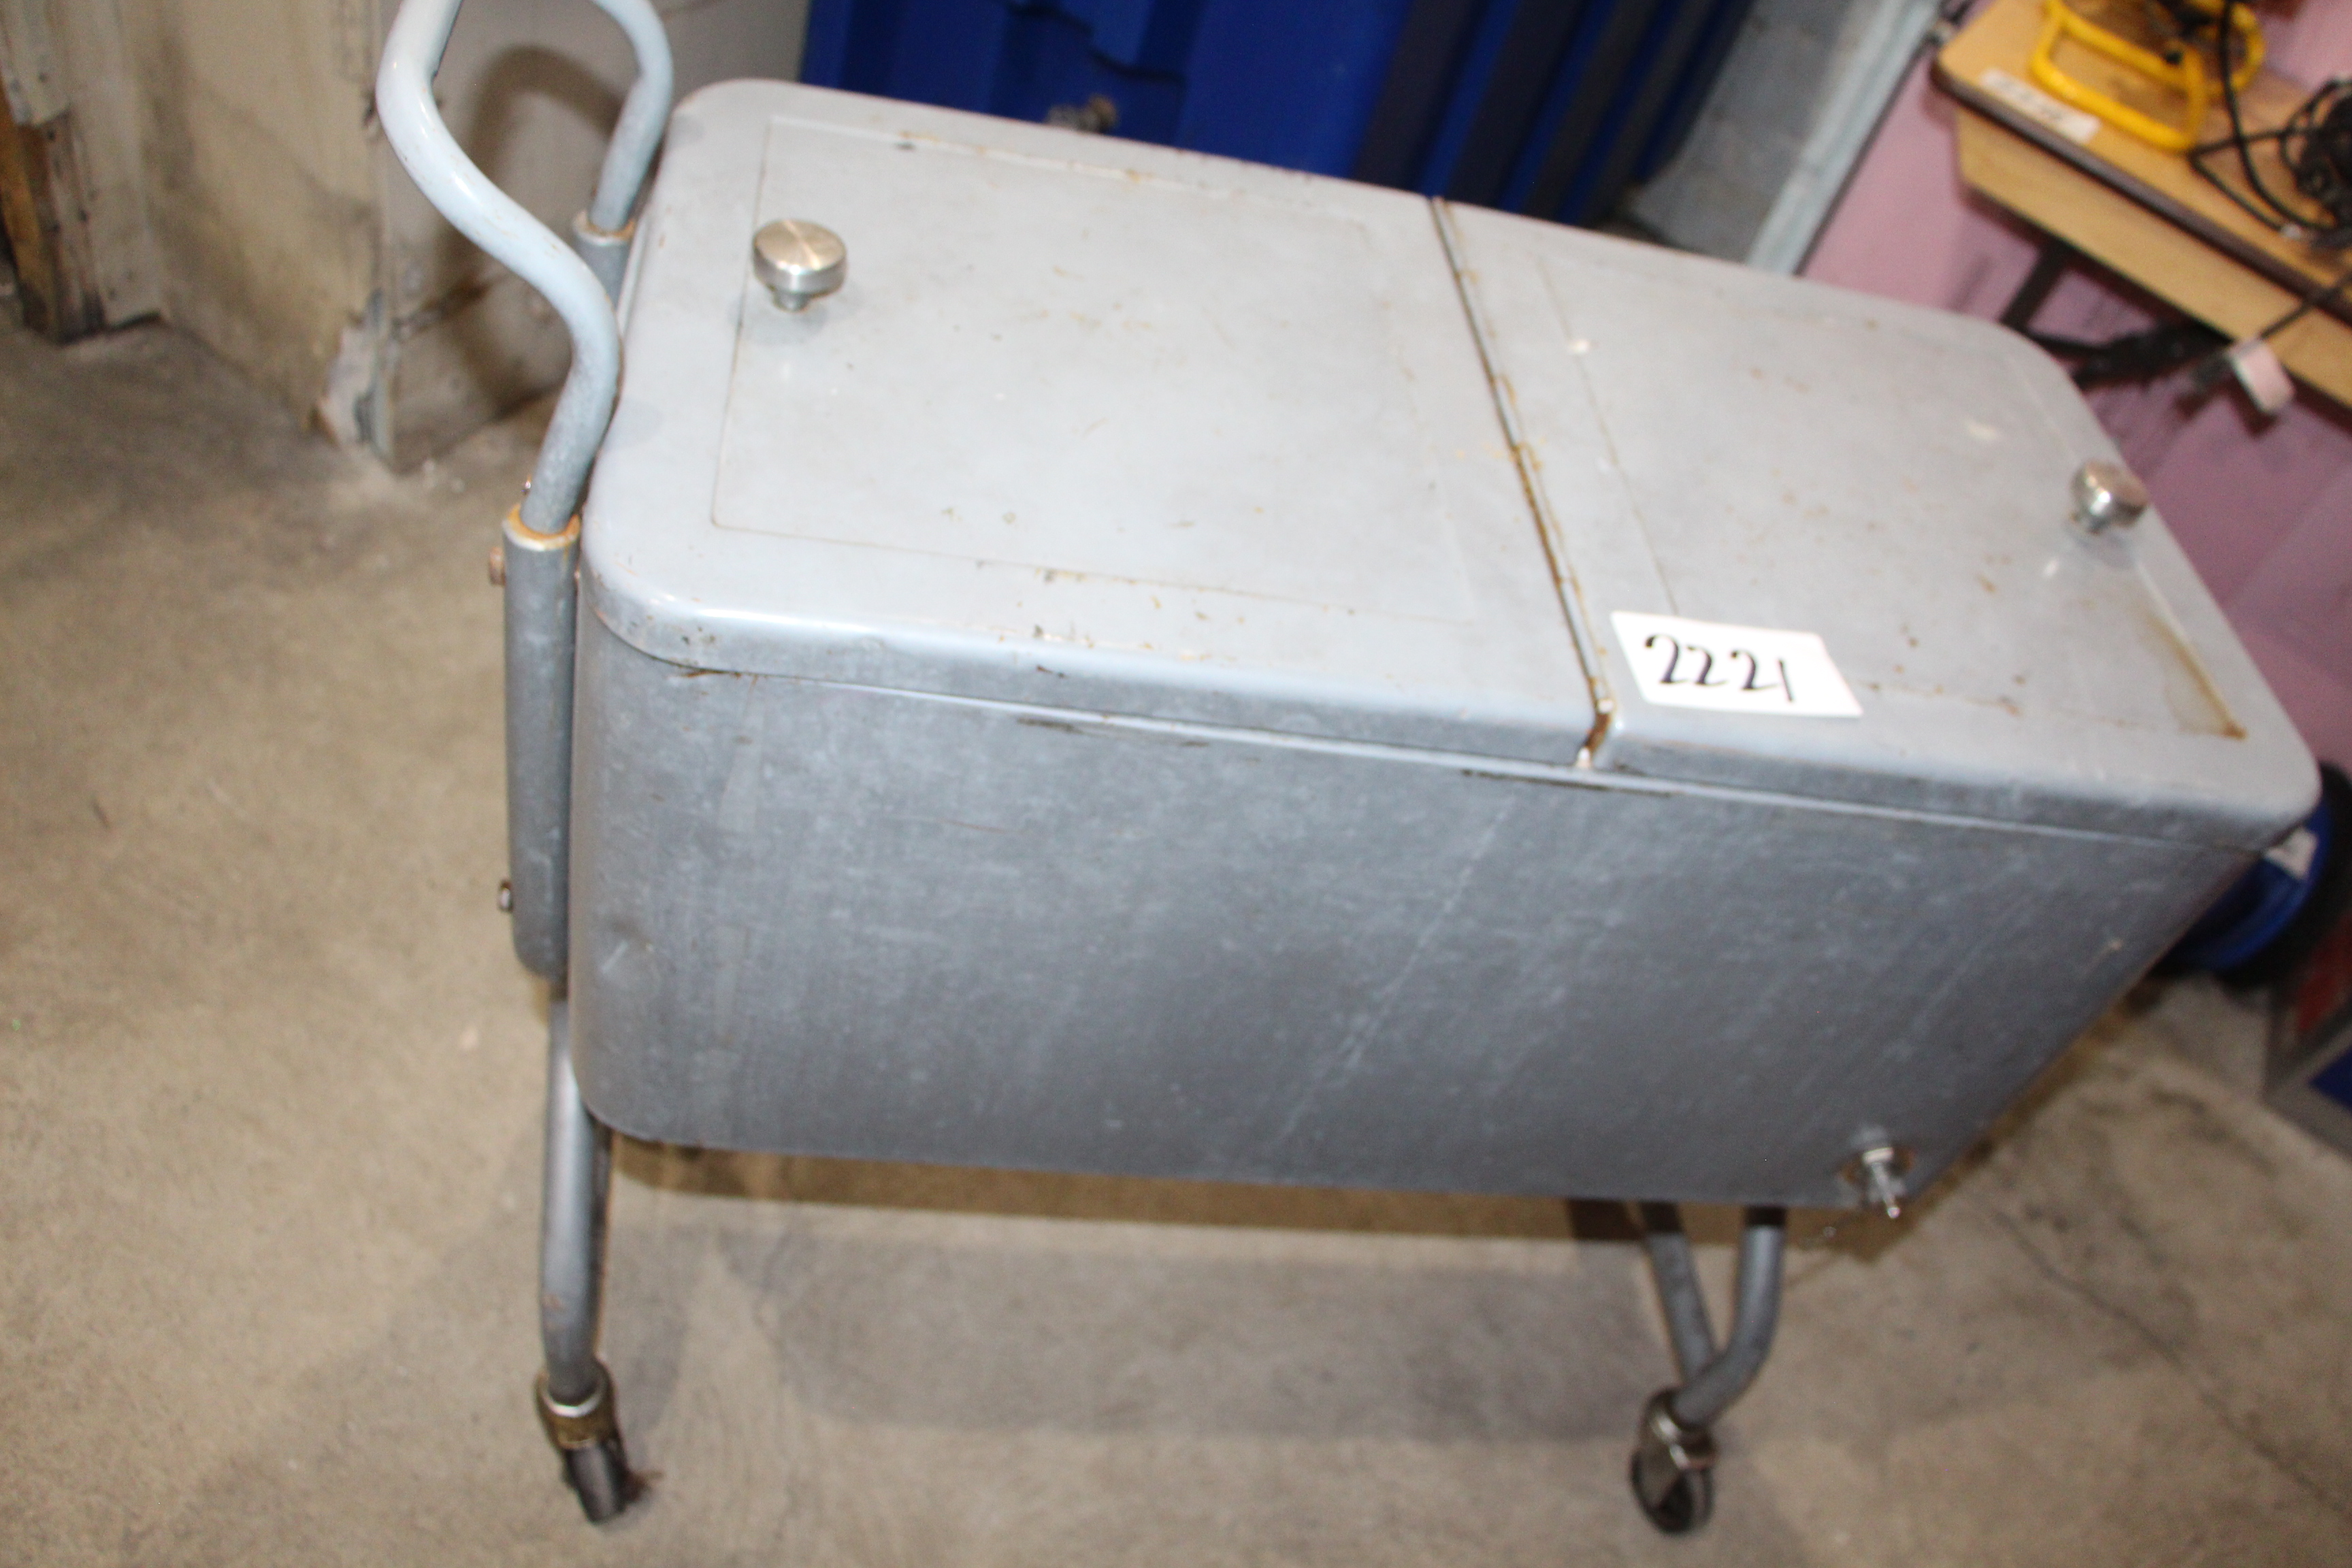 Lot 2221 - Cooler chest on wheels